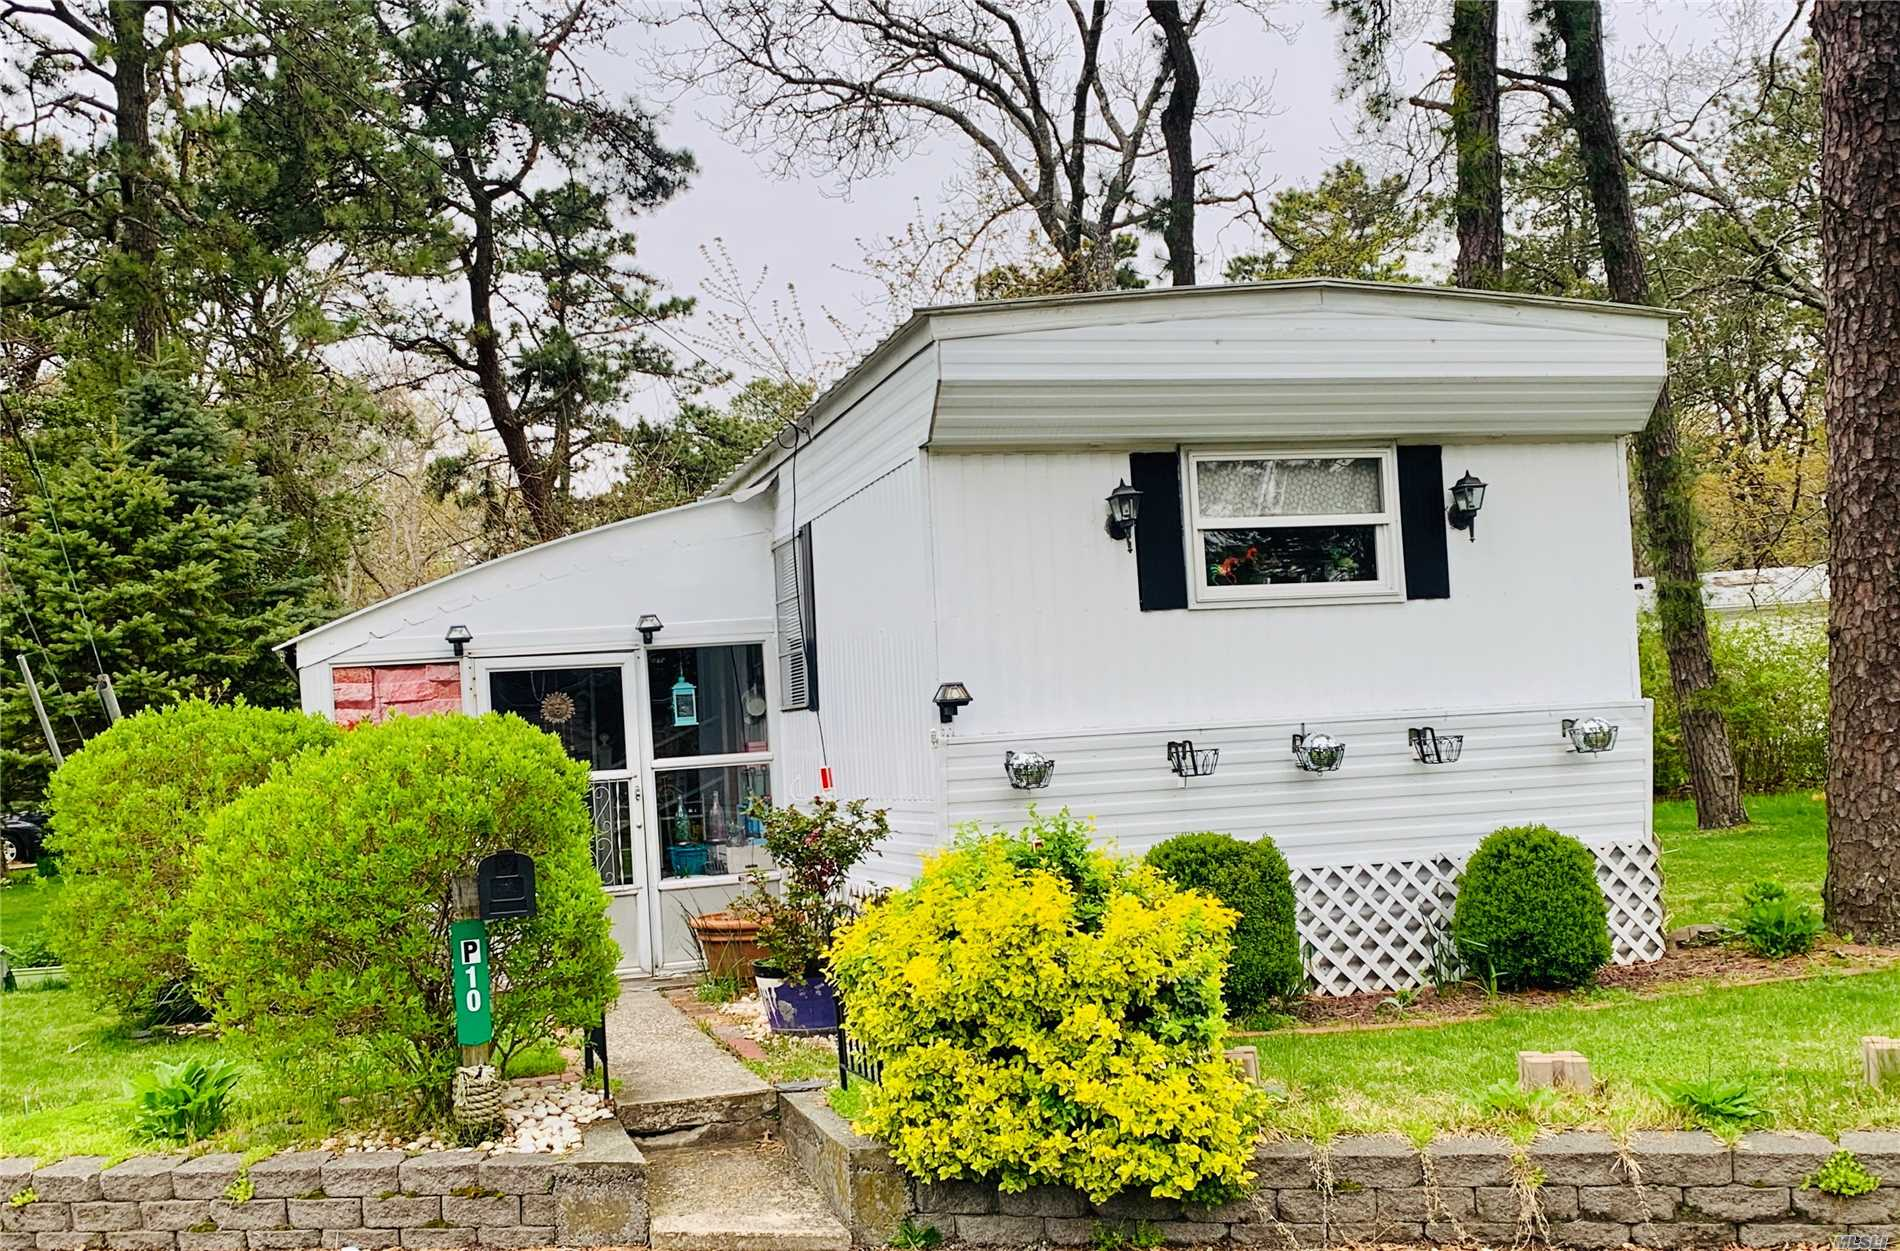 Located In A 55+ Community, Adjacent To Nature Preserve,  2 Bedrooms And 1 Bath Enclosed patio. Amenities Include Clubhouse And Bocce Ball, $803.23/Month Includes Taxes, Trash And Snow Removal, Water, Cesspool maintenance, Use Of Clubhouse. Southampton Beach Rights. Dogs Allowed Under 45Lbs.